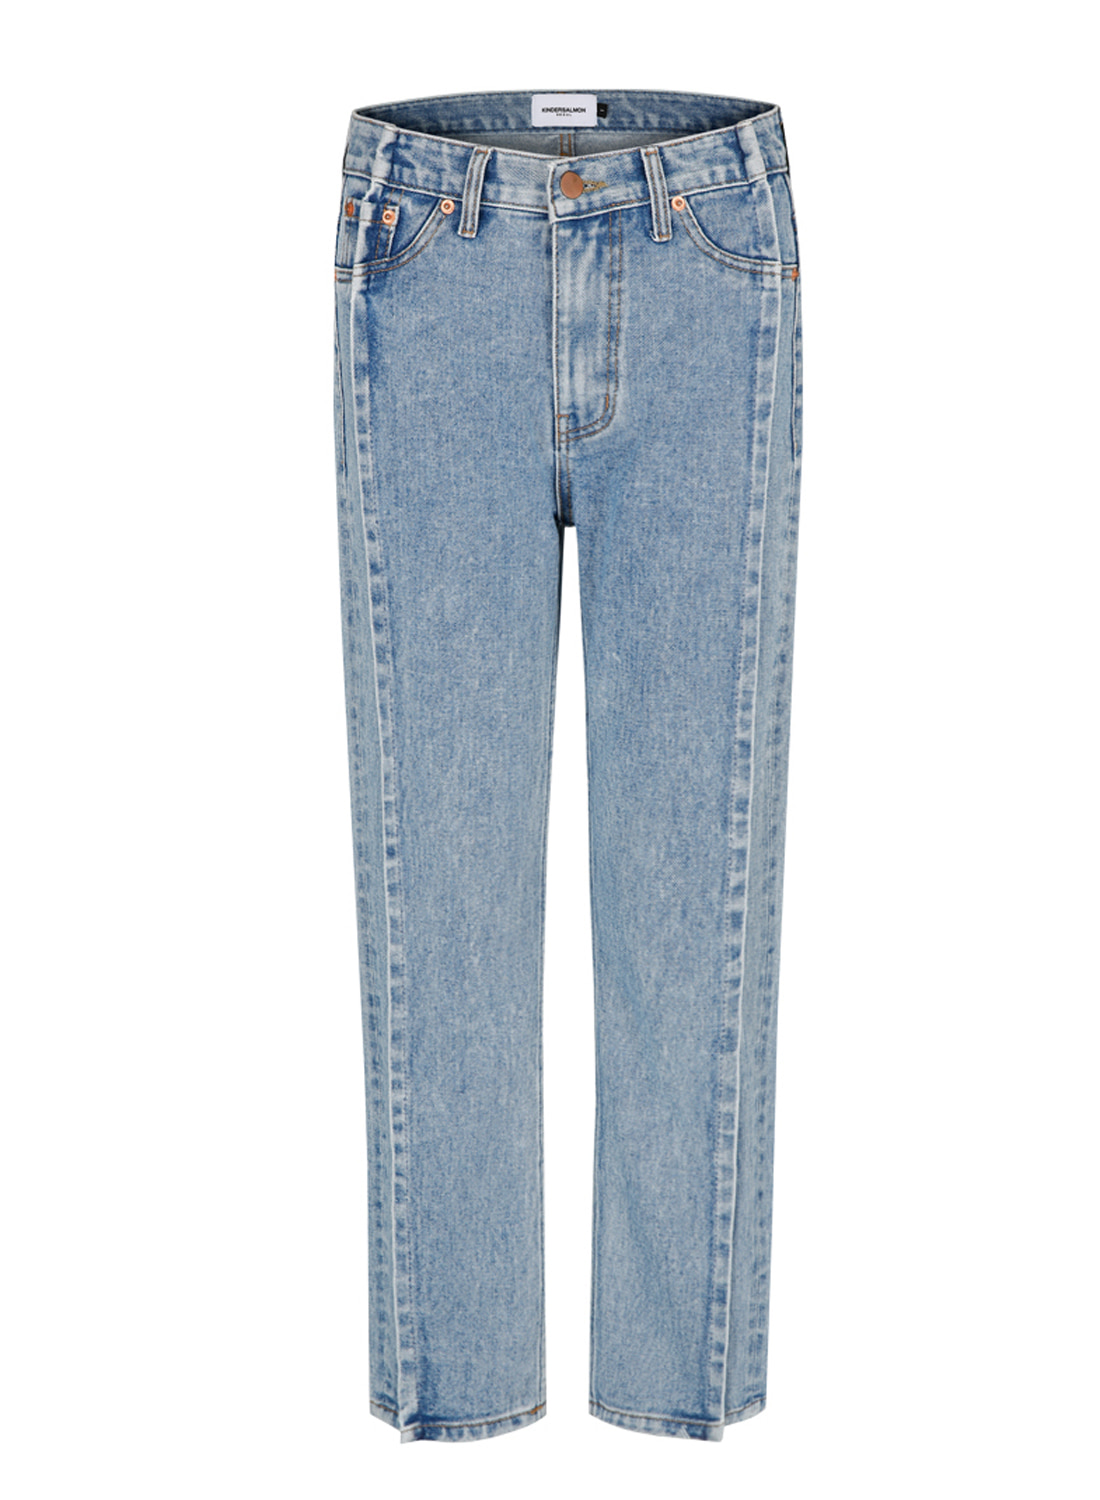 SS18 DENIM PANTS BLUE